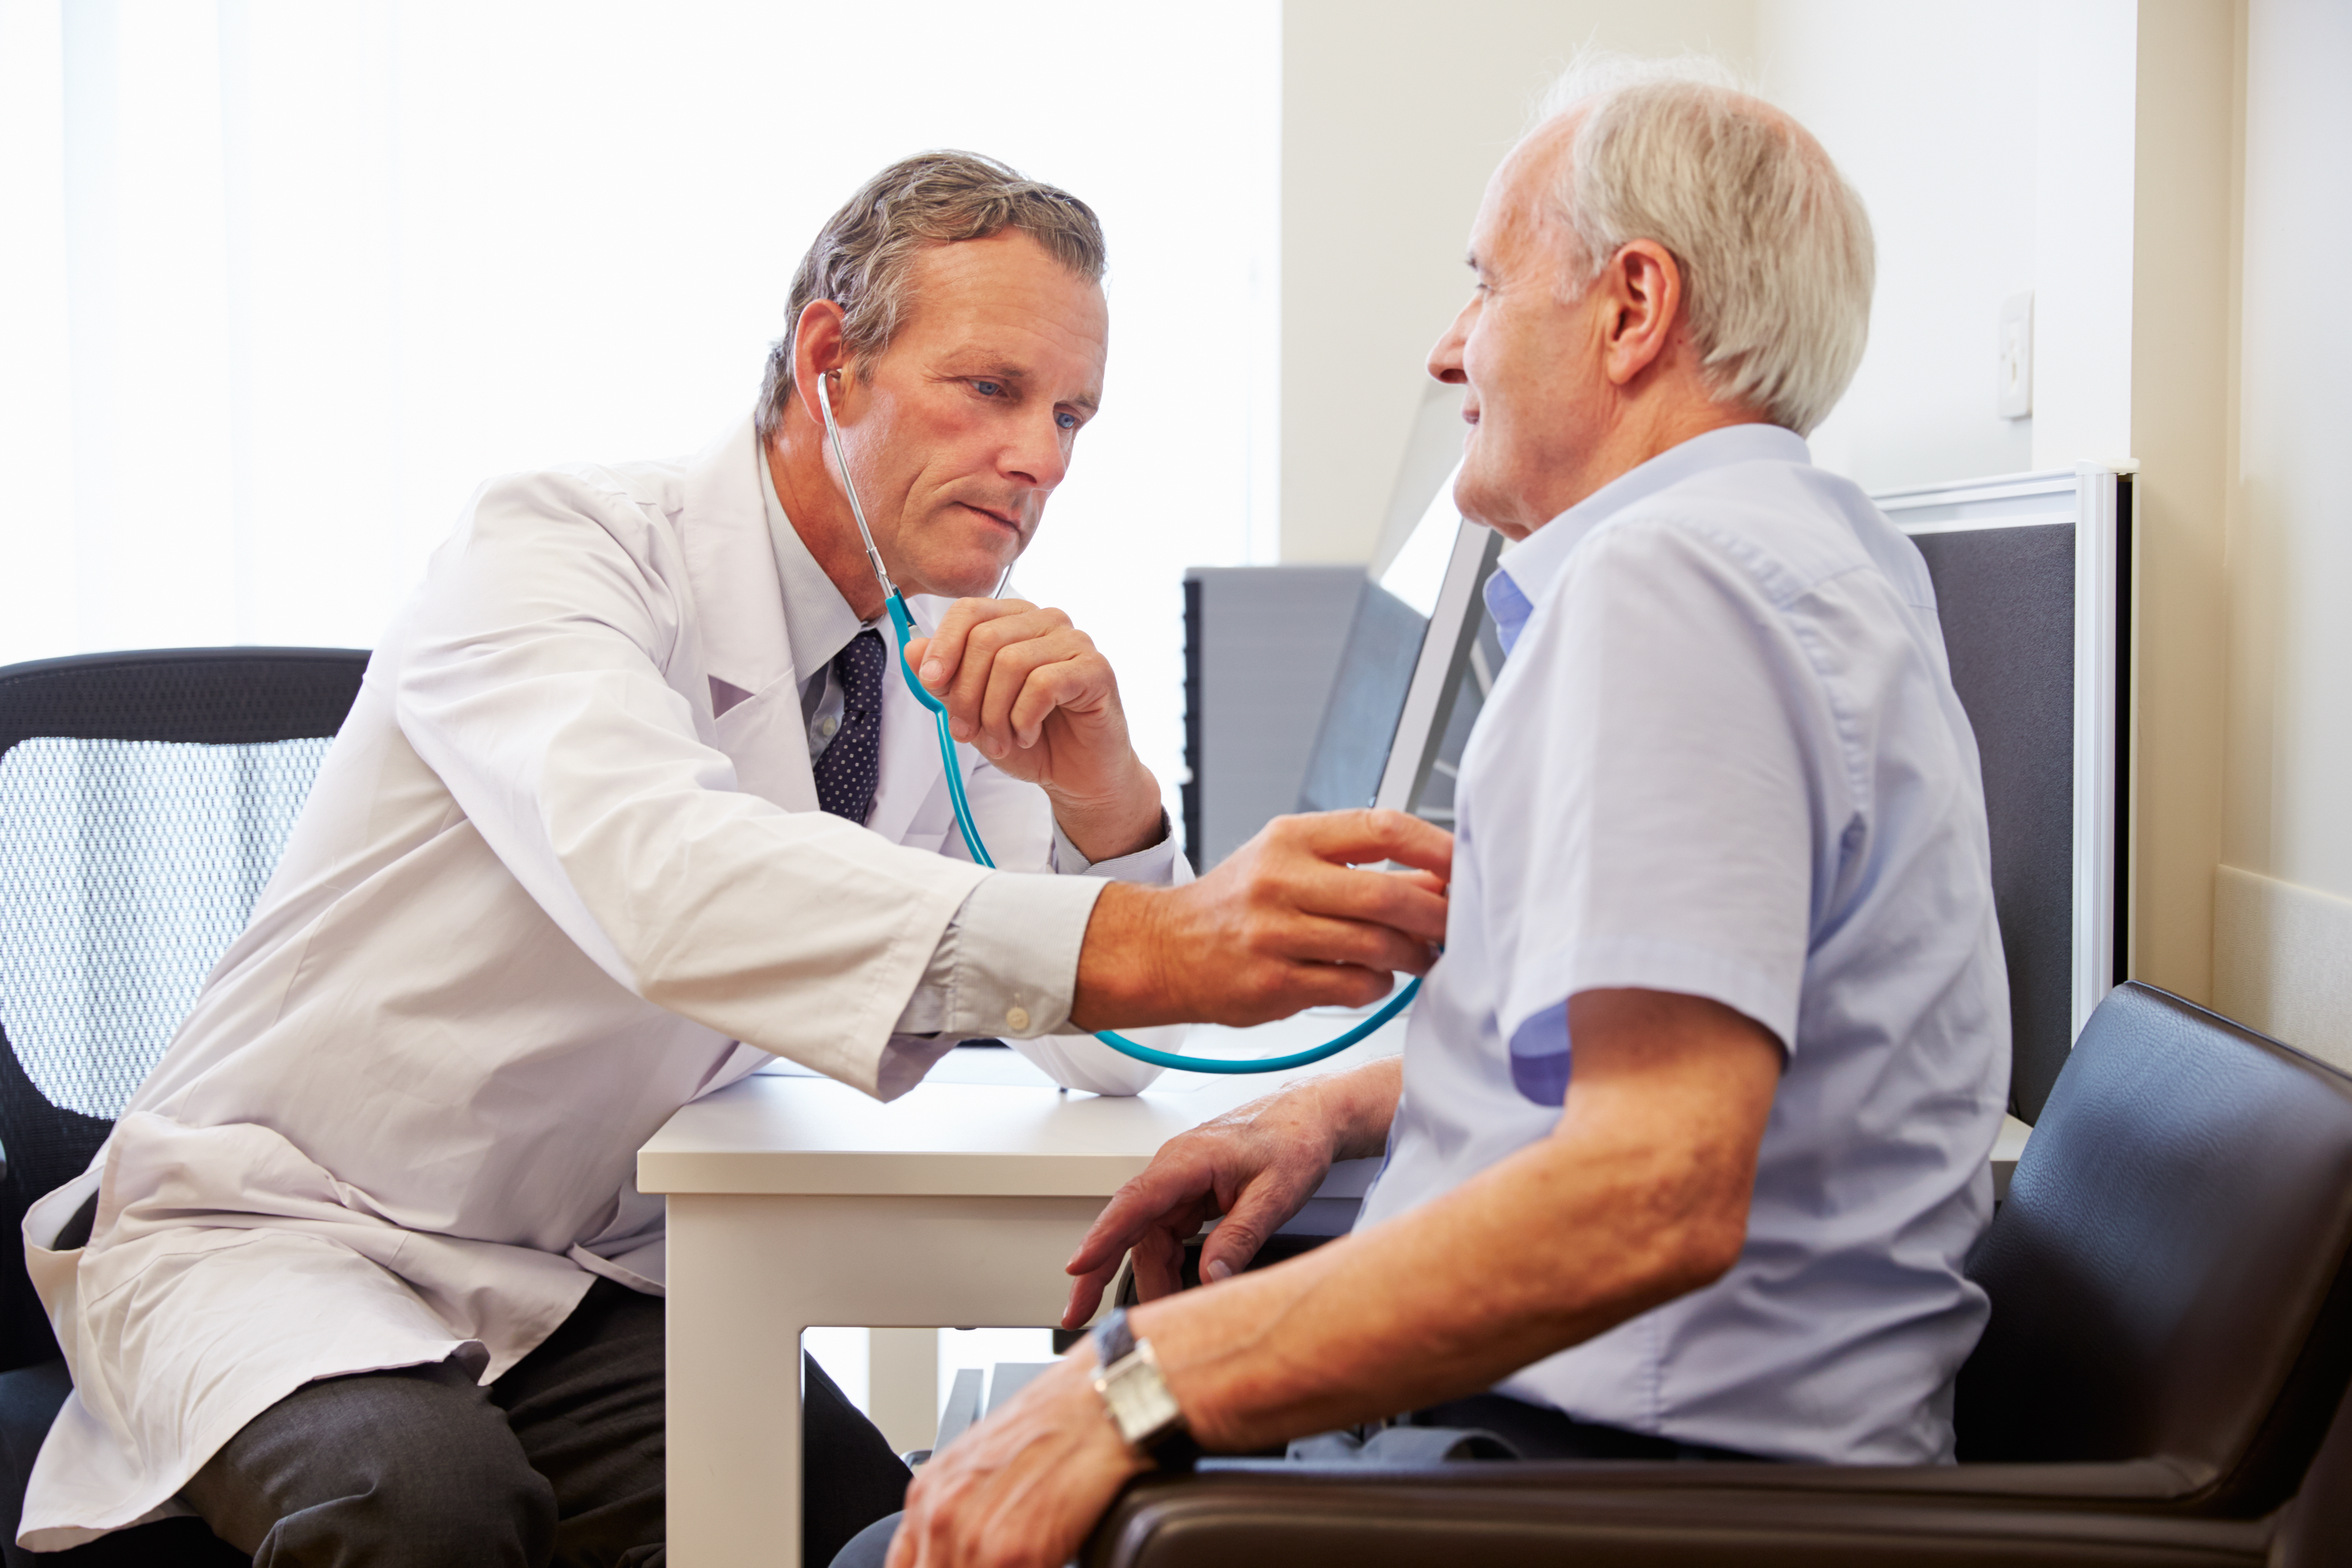 Men More Reluctant To Go To The Doctor  U2013 And It U0026 39 S Putting Them At Risk